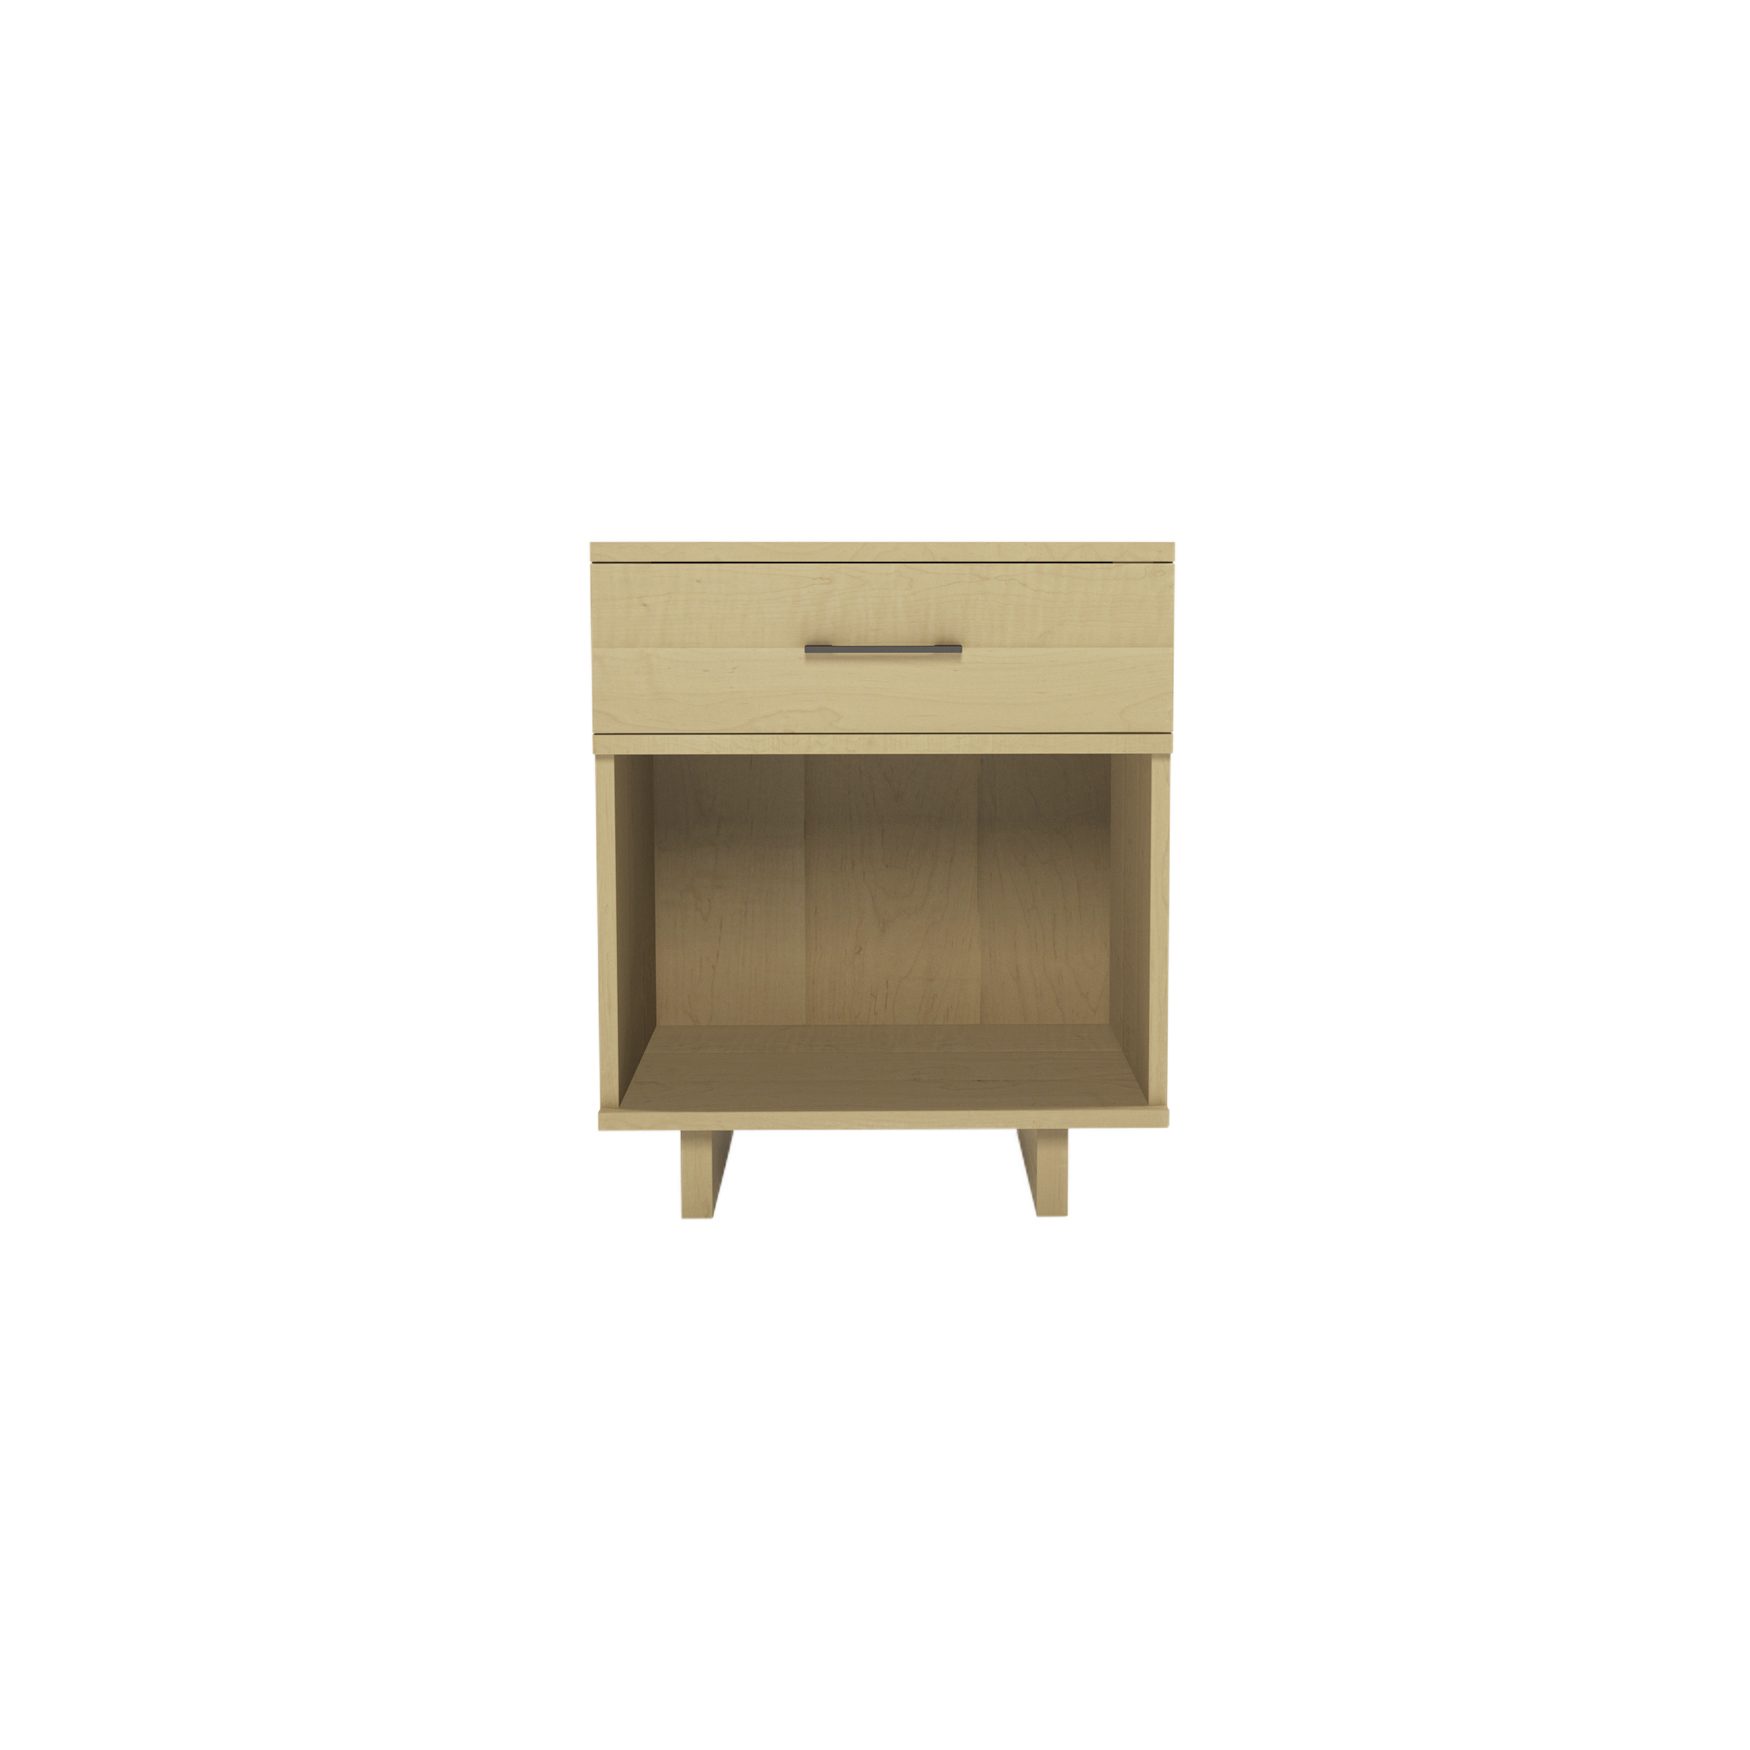 Series 252 Small Bedside Table – Maple